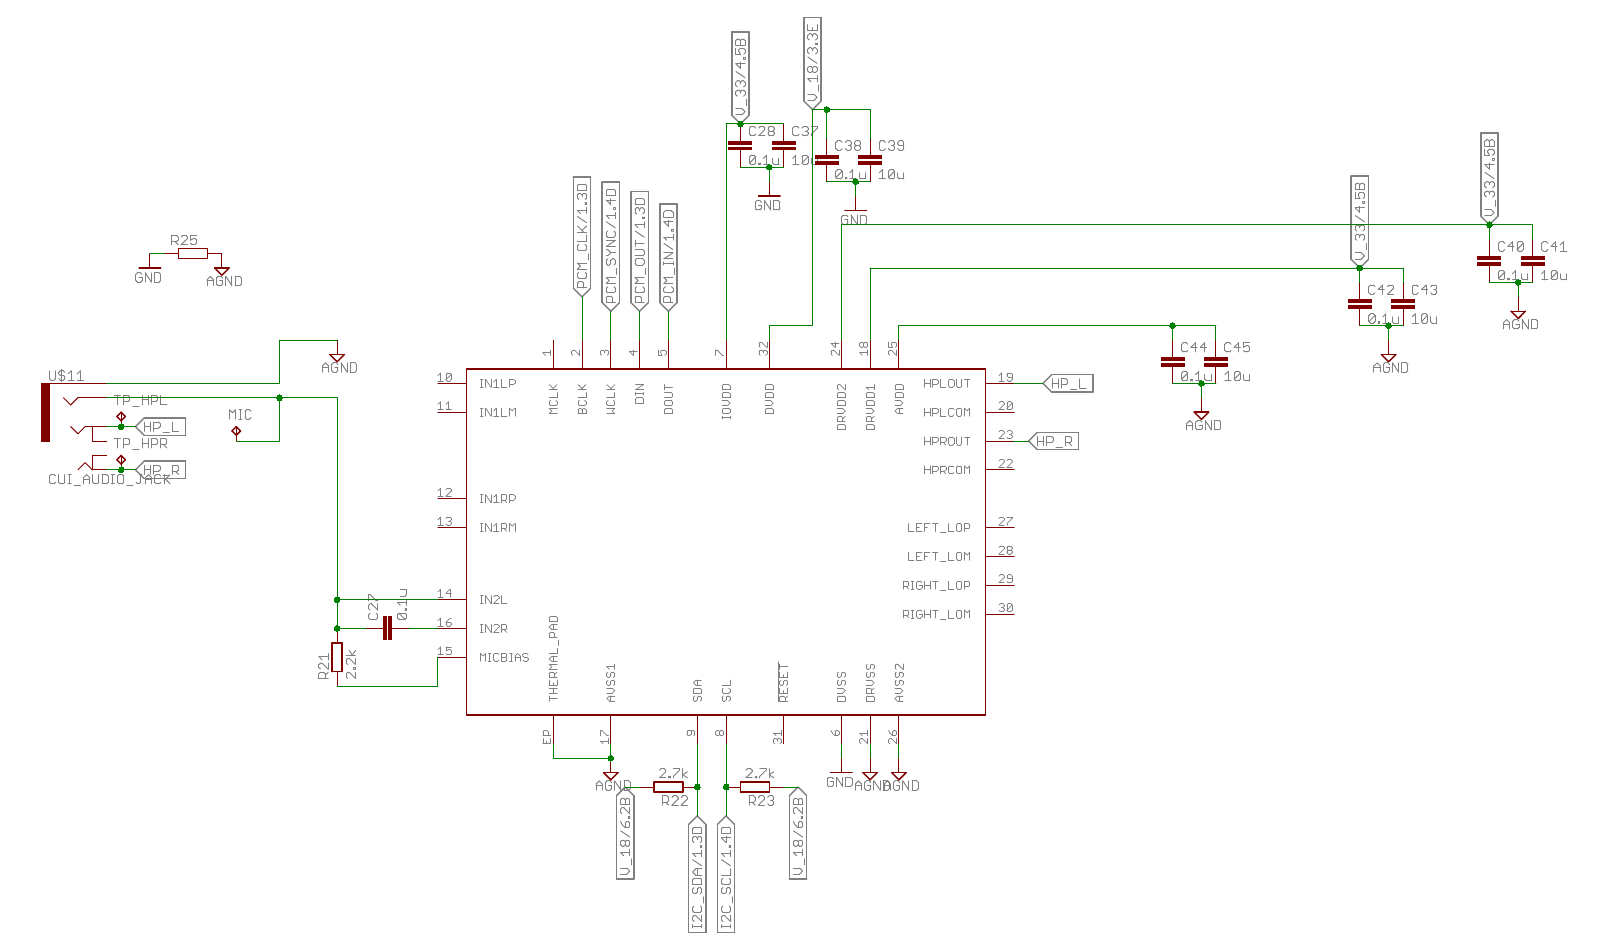 Resolved Tlv320aic3104 Q1 Cellular Stereo Headset Connection Right With Microphone Diagram Further Wiring My First Question Is Have I Got The Jack Connections Do You See Any Possible Problems There